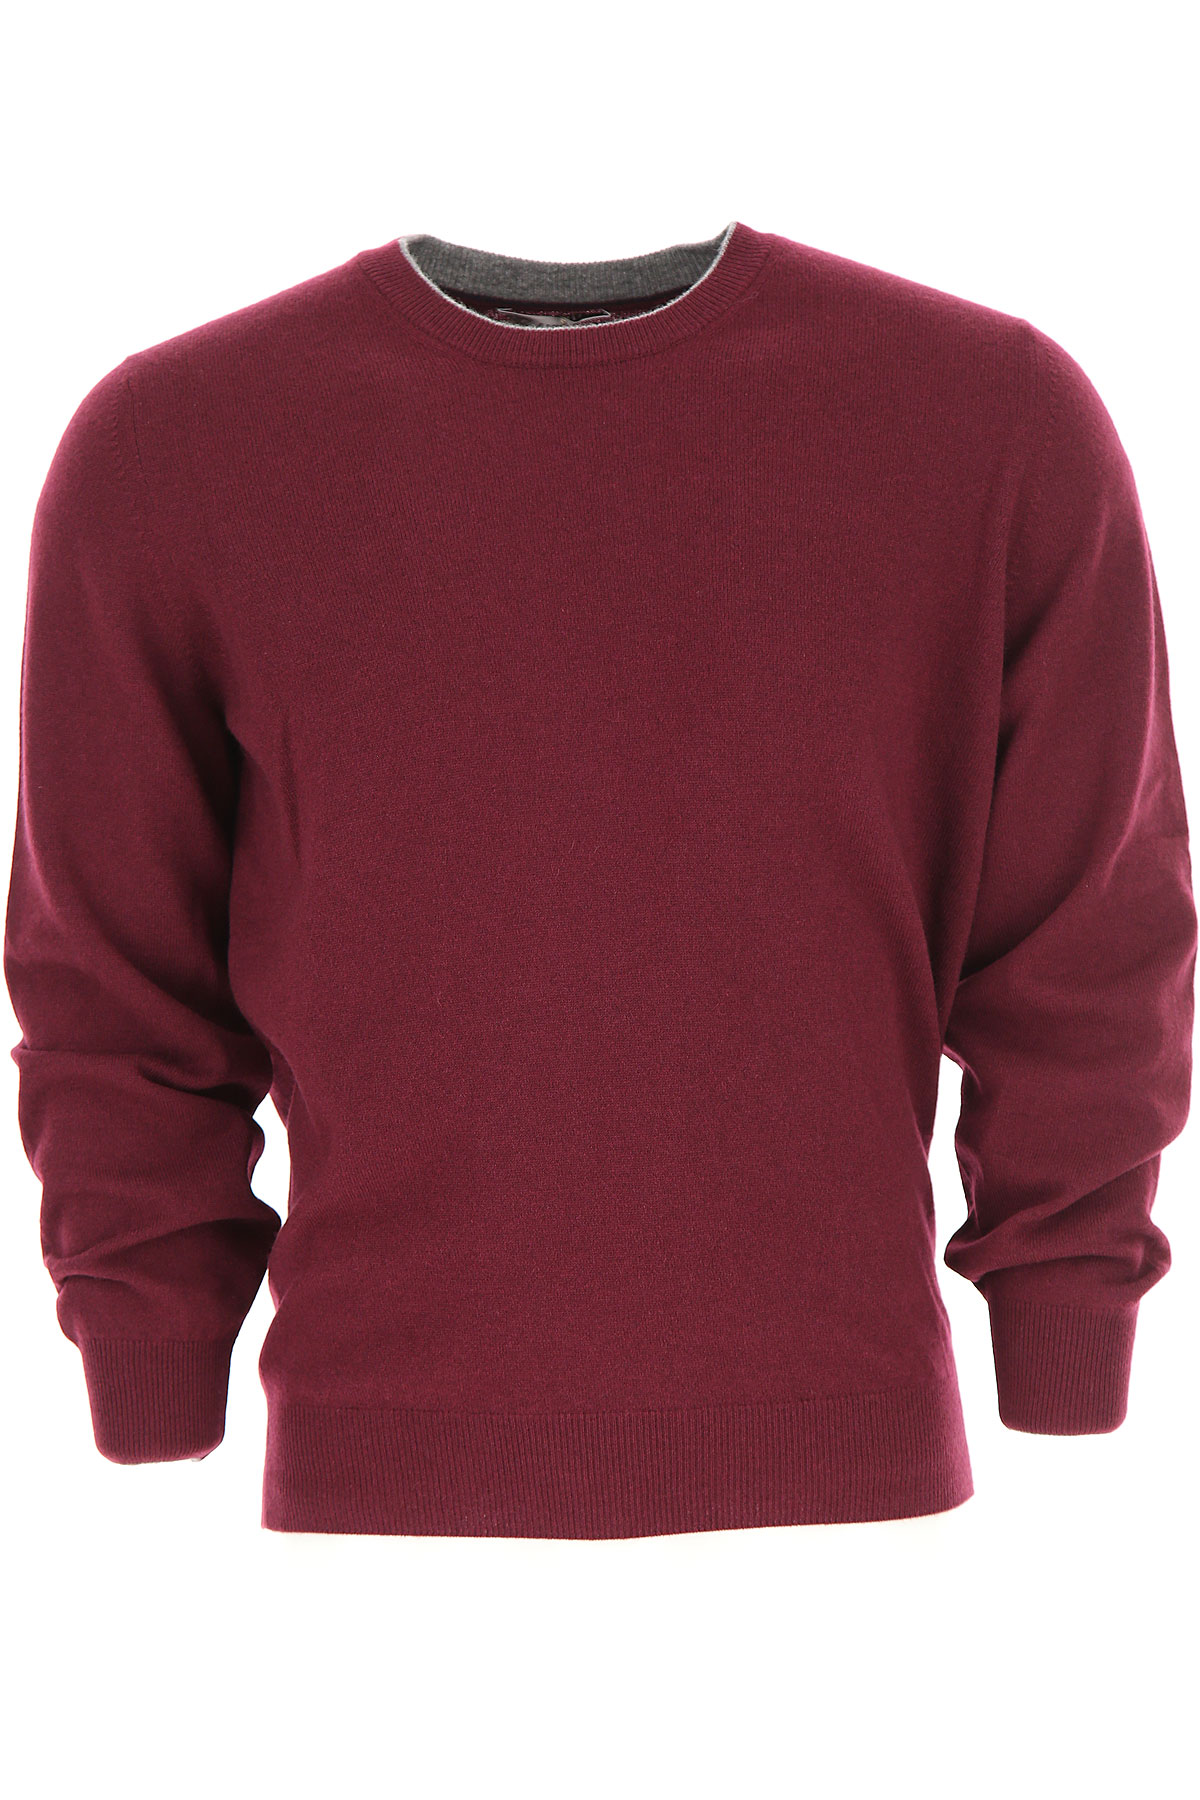 Brunello Cucinelli Sweater for Men Jumper, Bordeaux Wine, Virgin wool, 2017, L M S XL XXL USA-474965